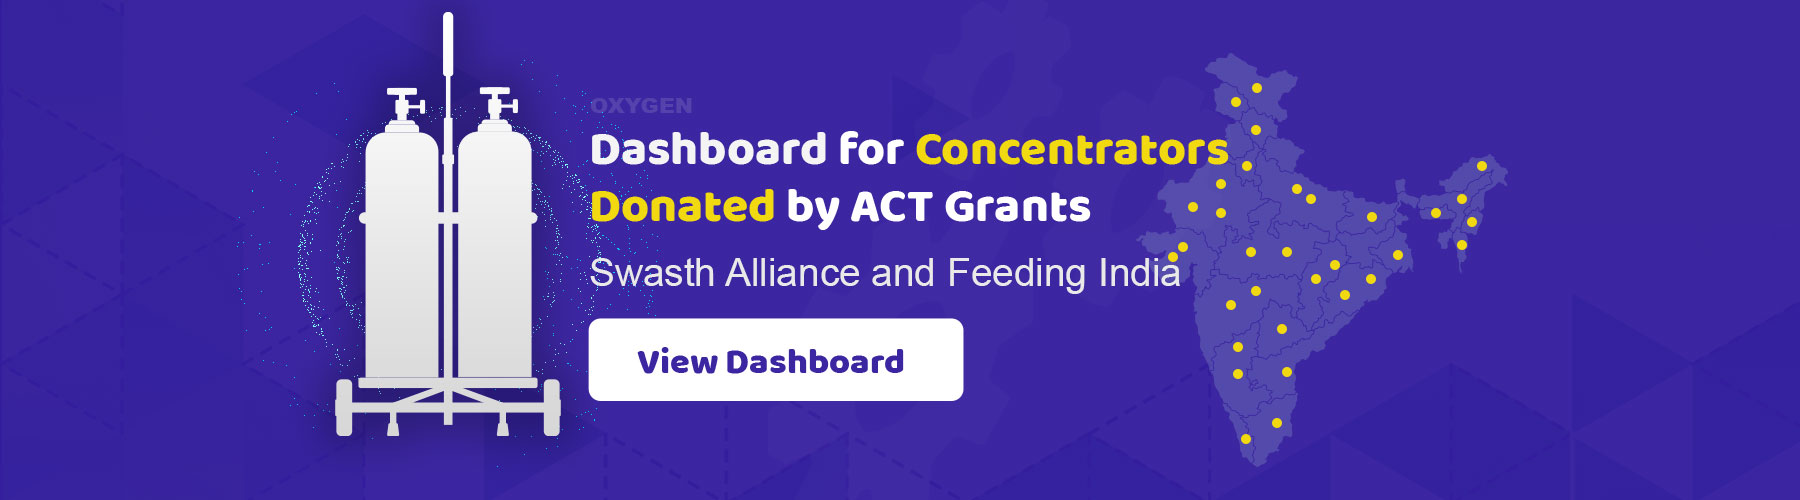 Dashboard for Concentrators donated by ACT Grants, Swasth Alliance and Feeding India